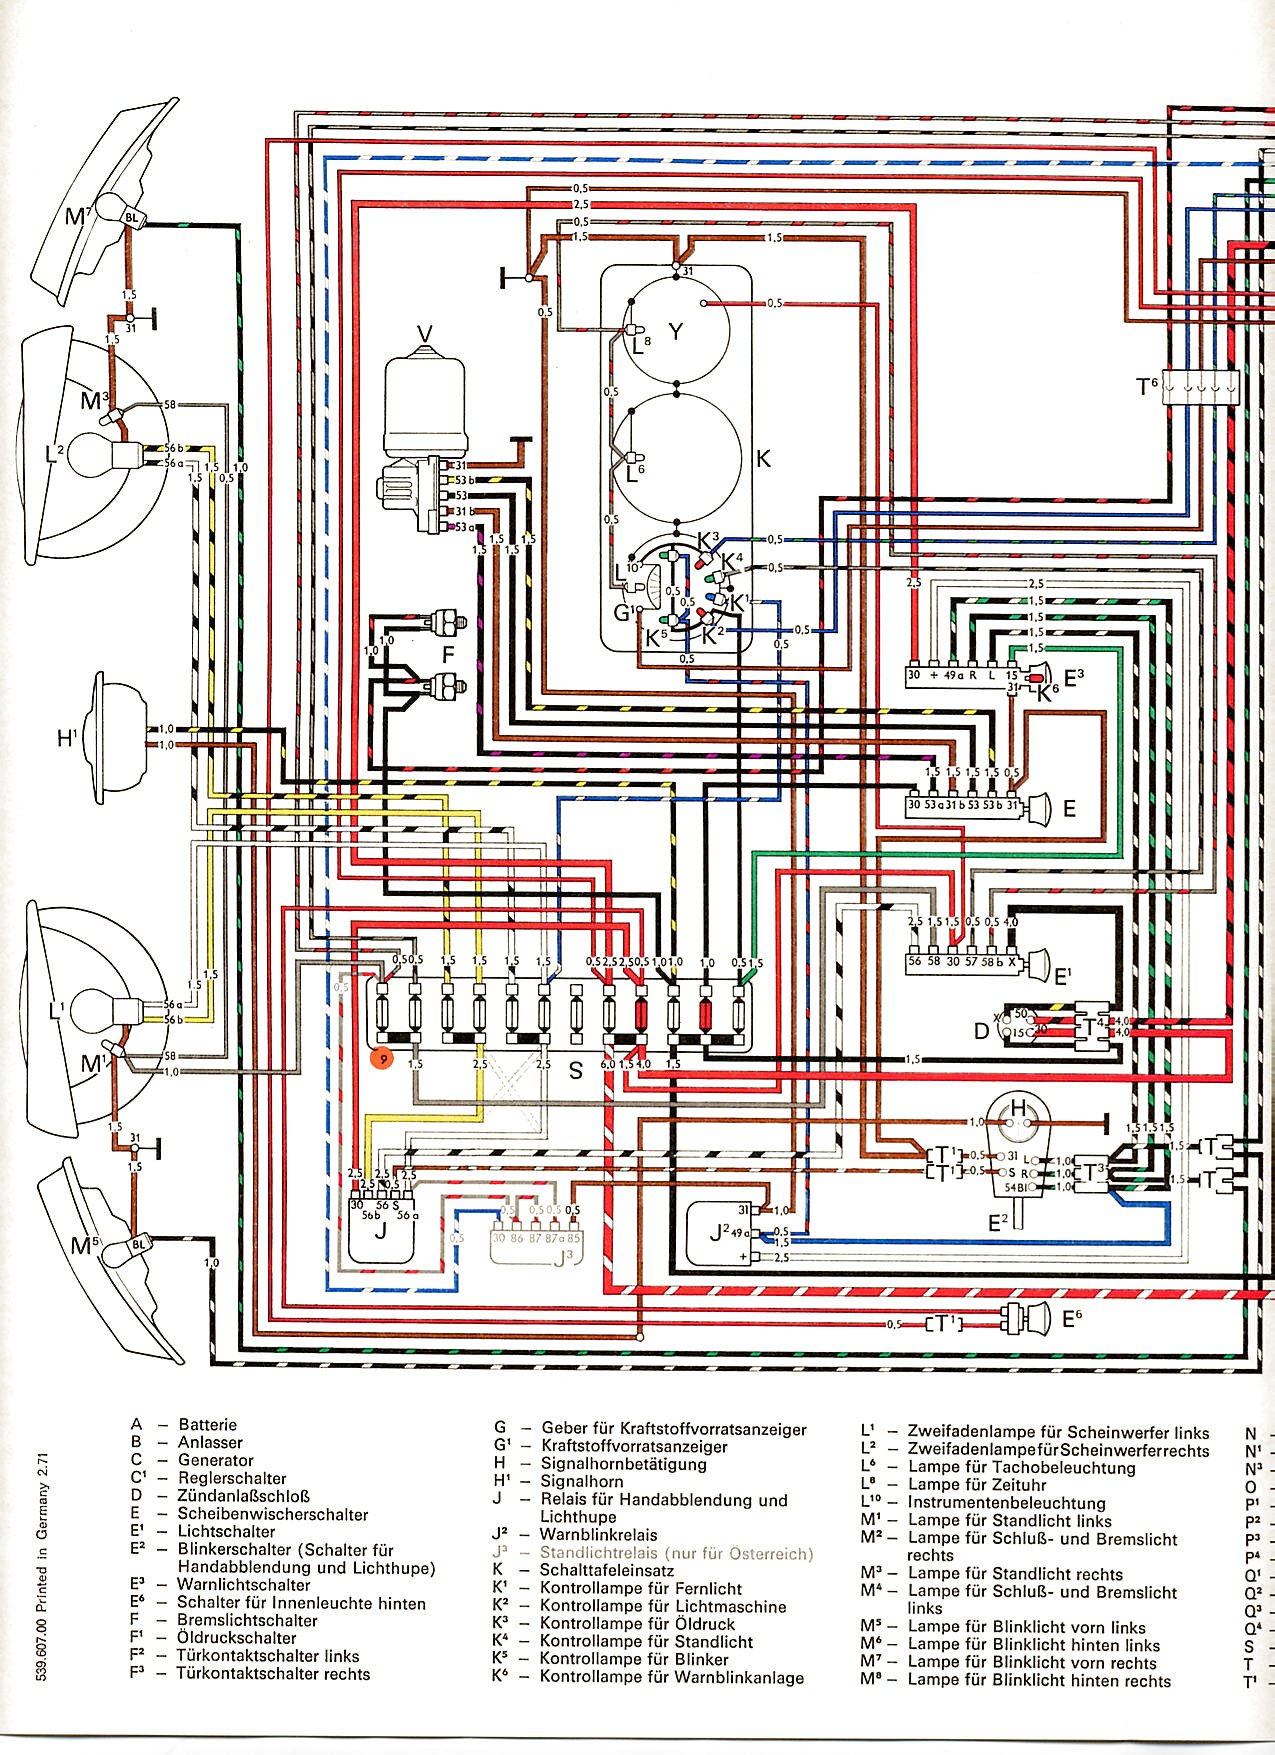 vintagebus com vw bus and other wiring diagrams rh vintagebus com 1976 vw bus wiring diagram 1973 VW Bus Vacuum Diagram